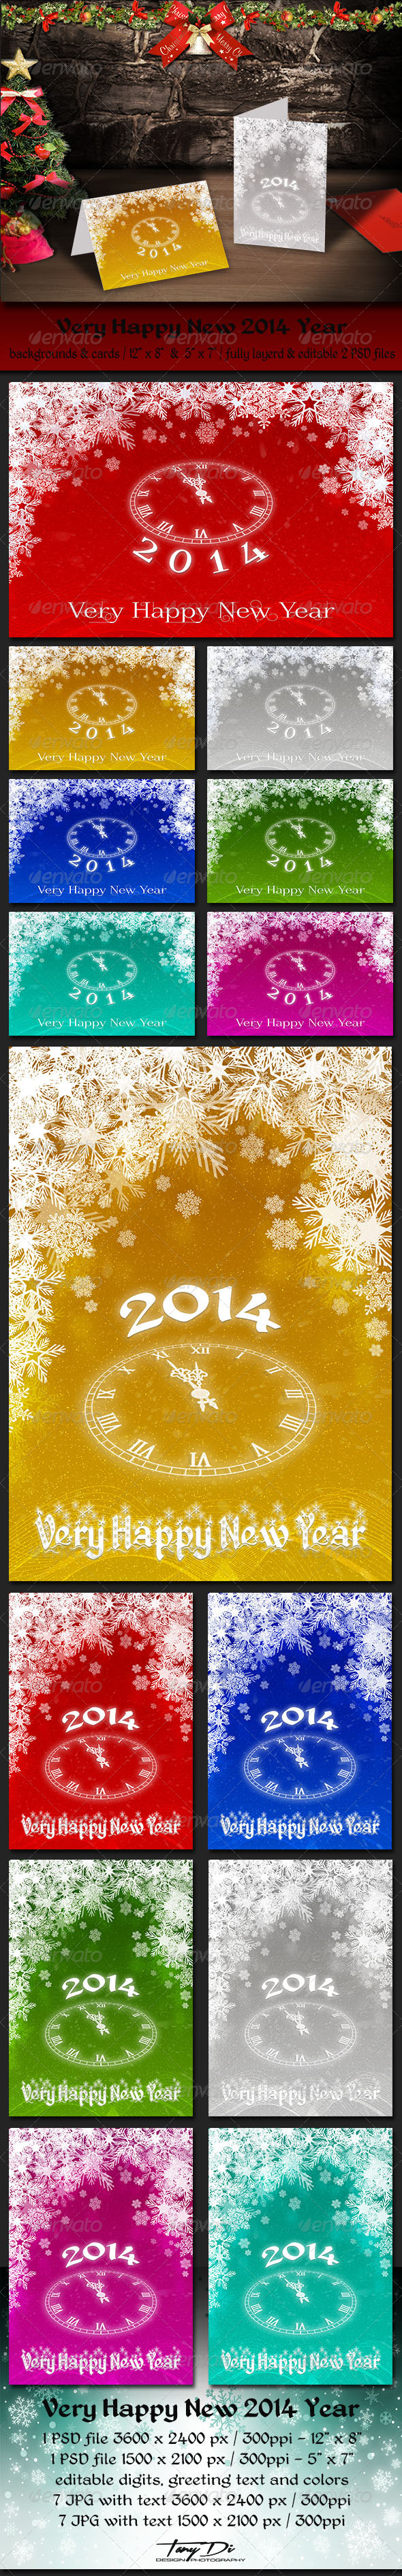 GraphicRiver Very Happy New 2014 Year 6306561